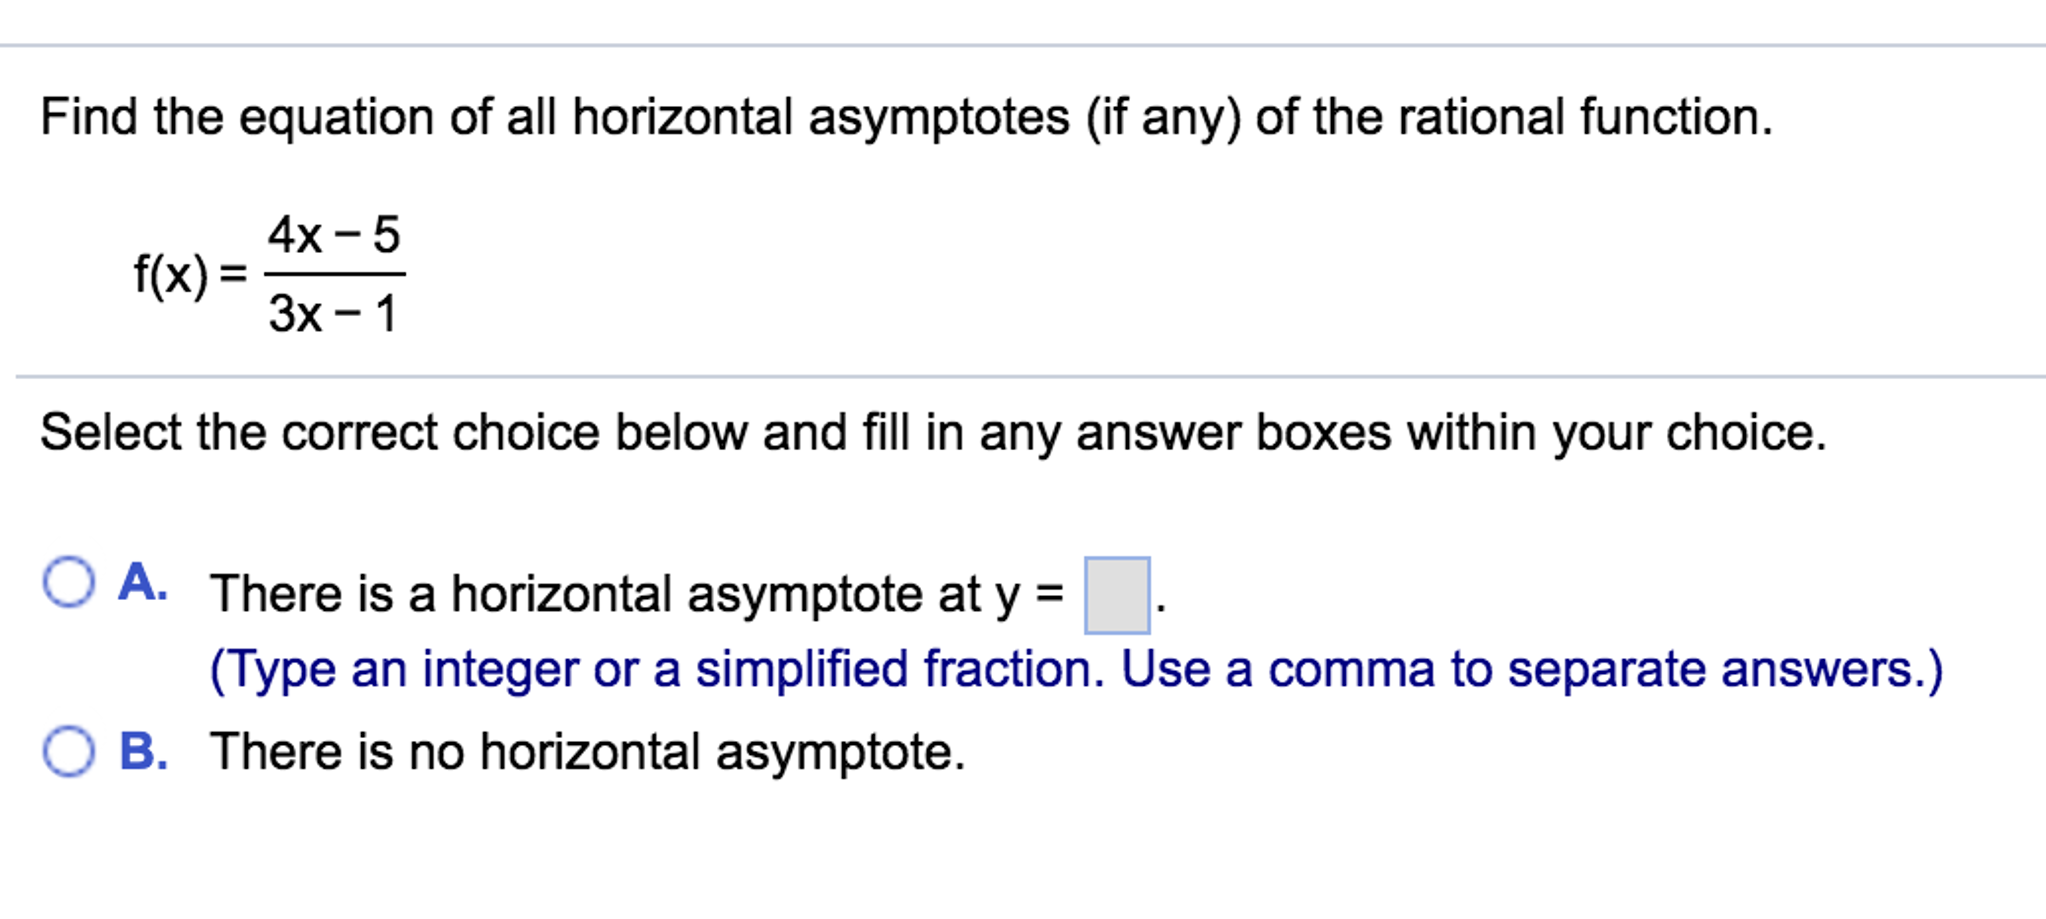 solved: find the equation of all horizontal asymptotes (if